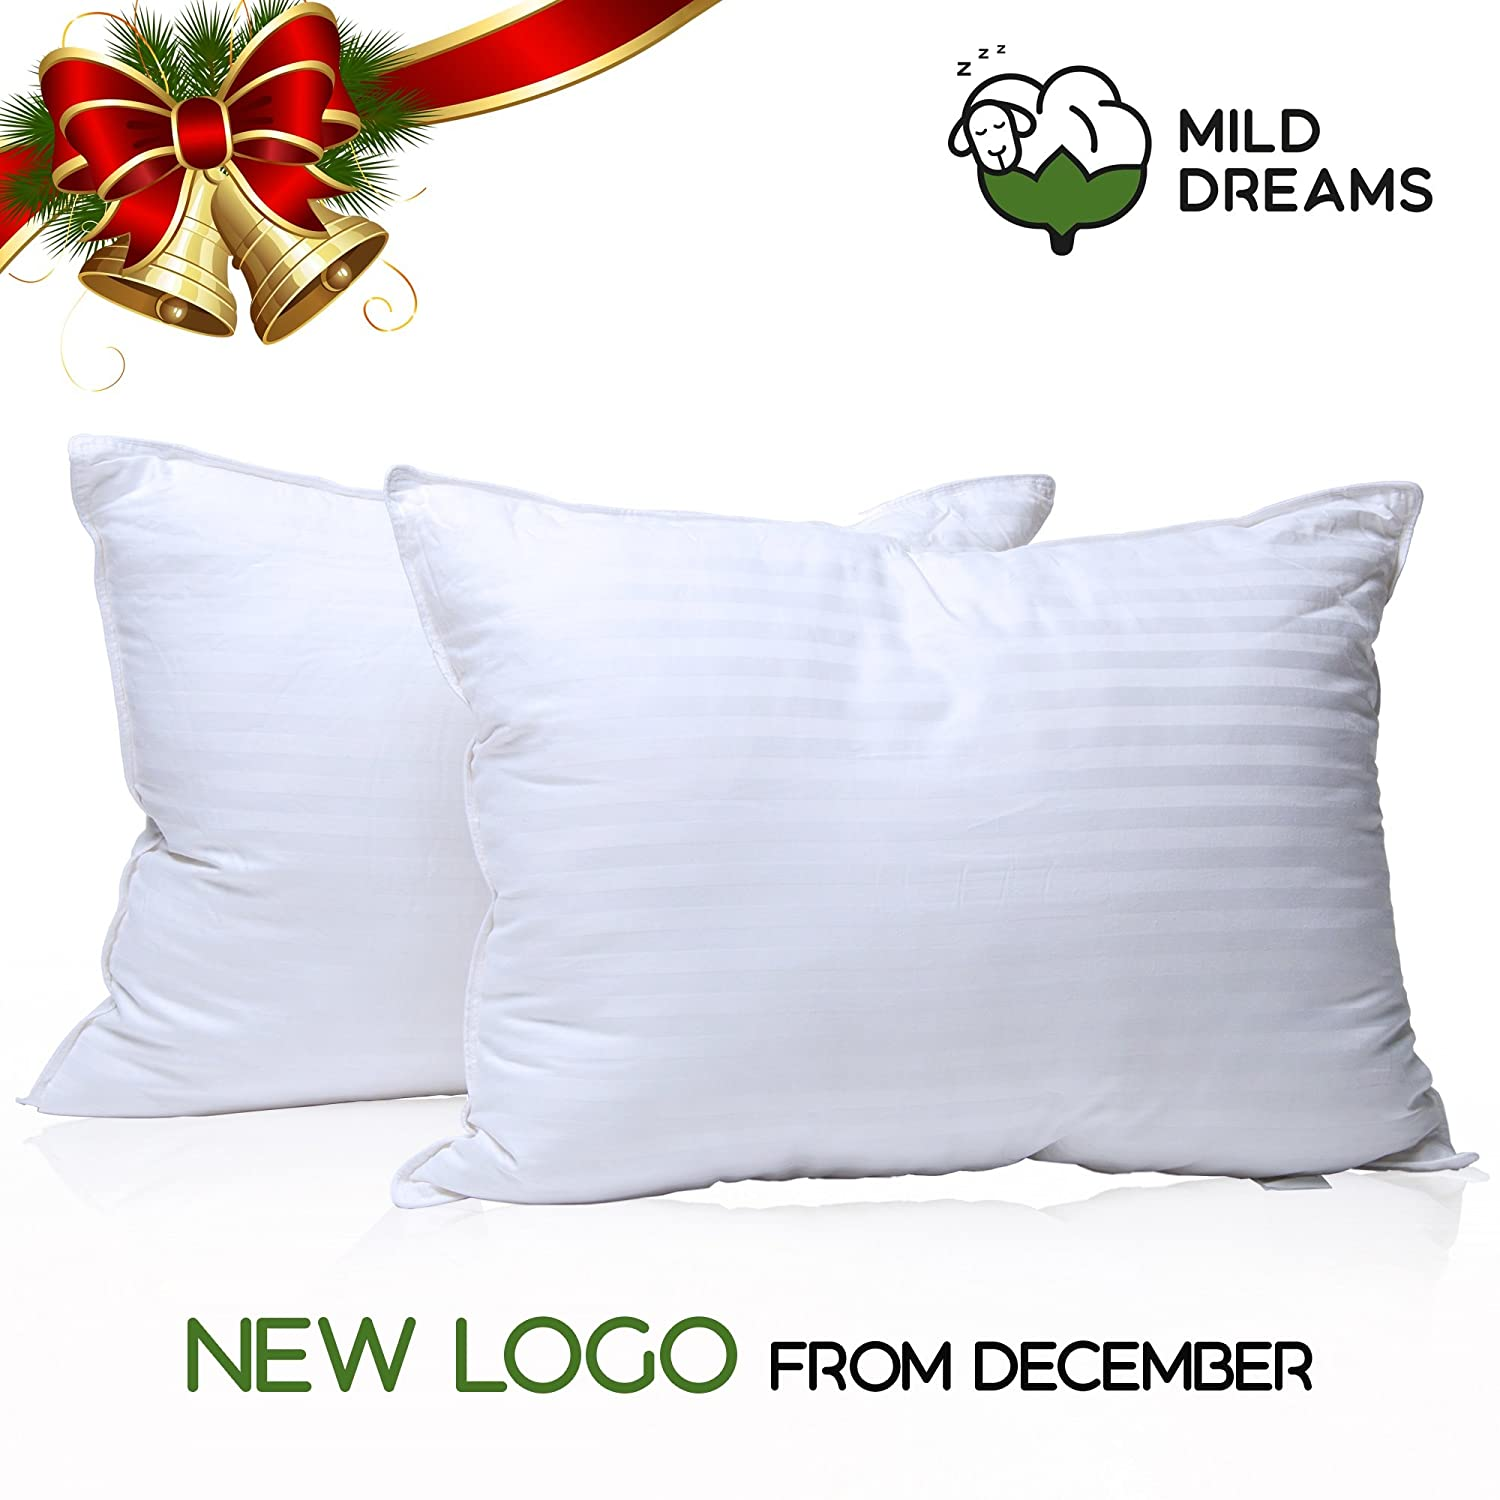 Best Hotel Pillow Set of 2 Bed Pillow Pillows for Sleeping 2 Pack Standard Size 20x26 inch Soft Hypoallergenic Material Milddreams